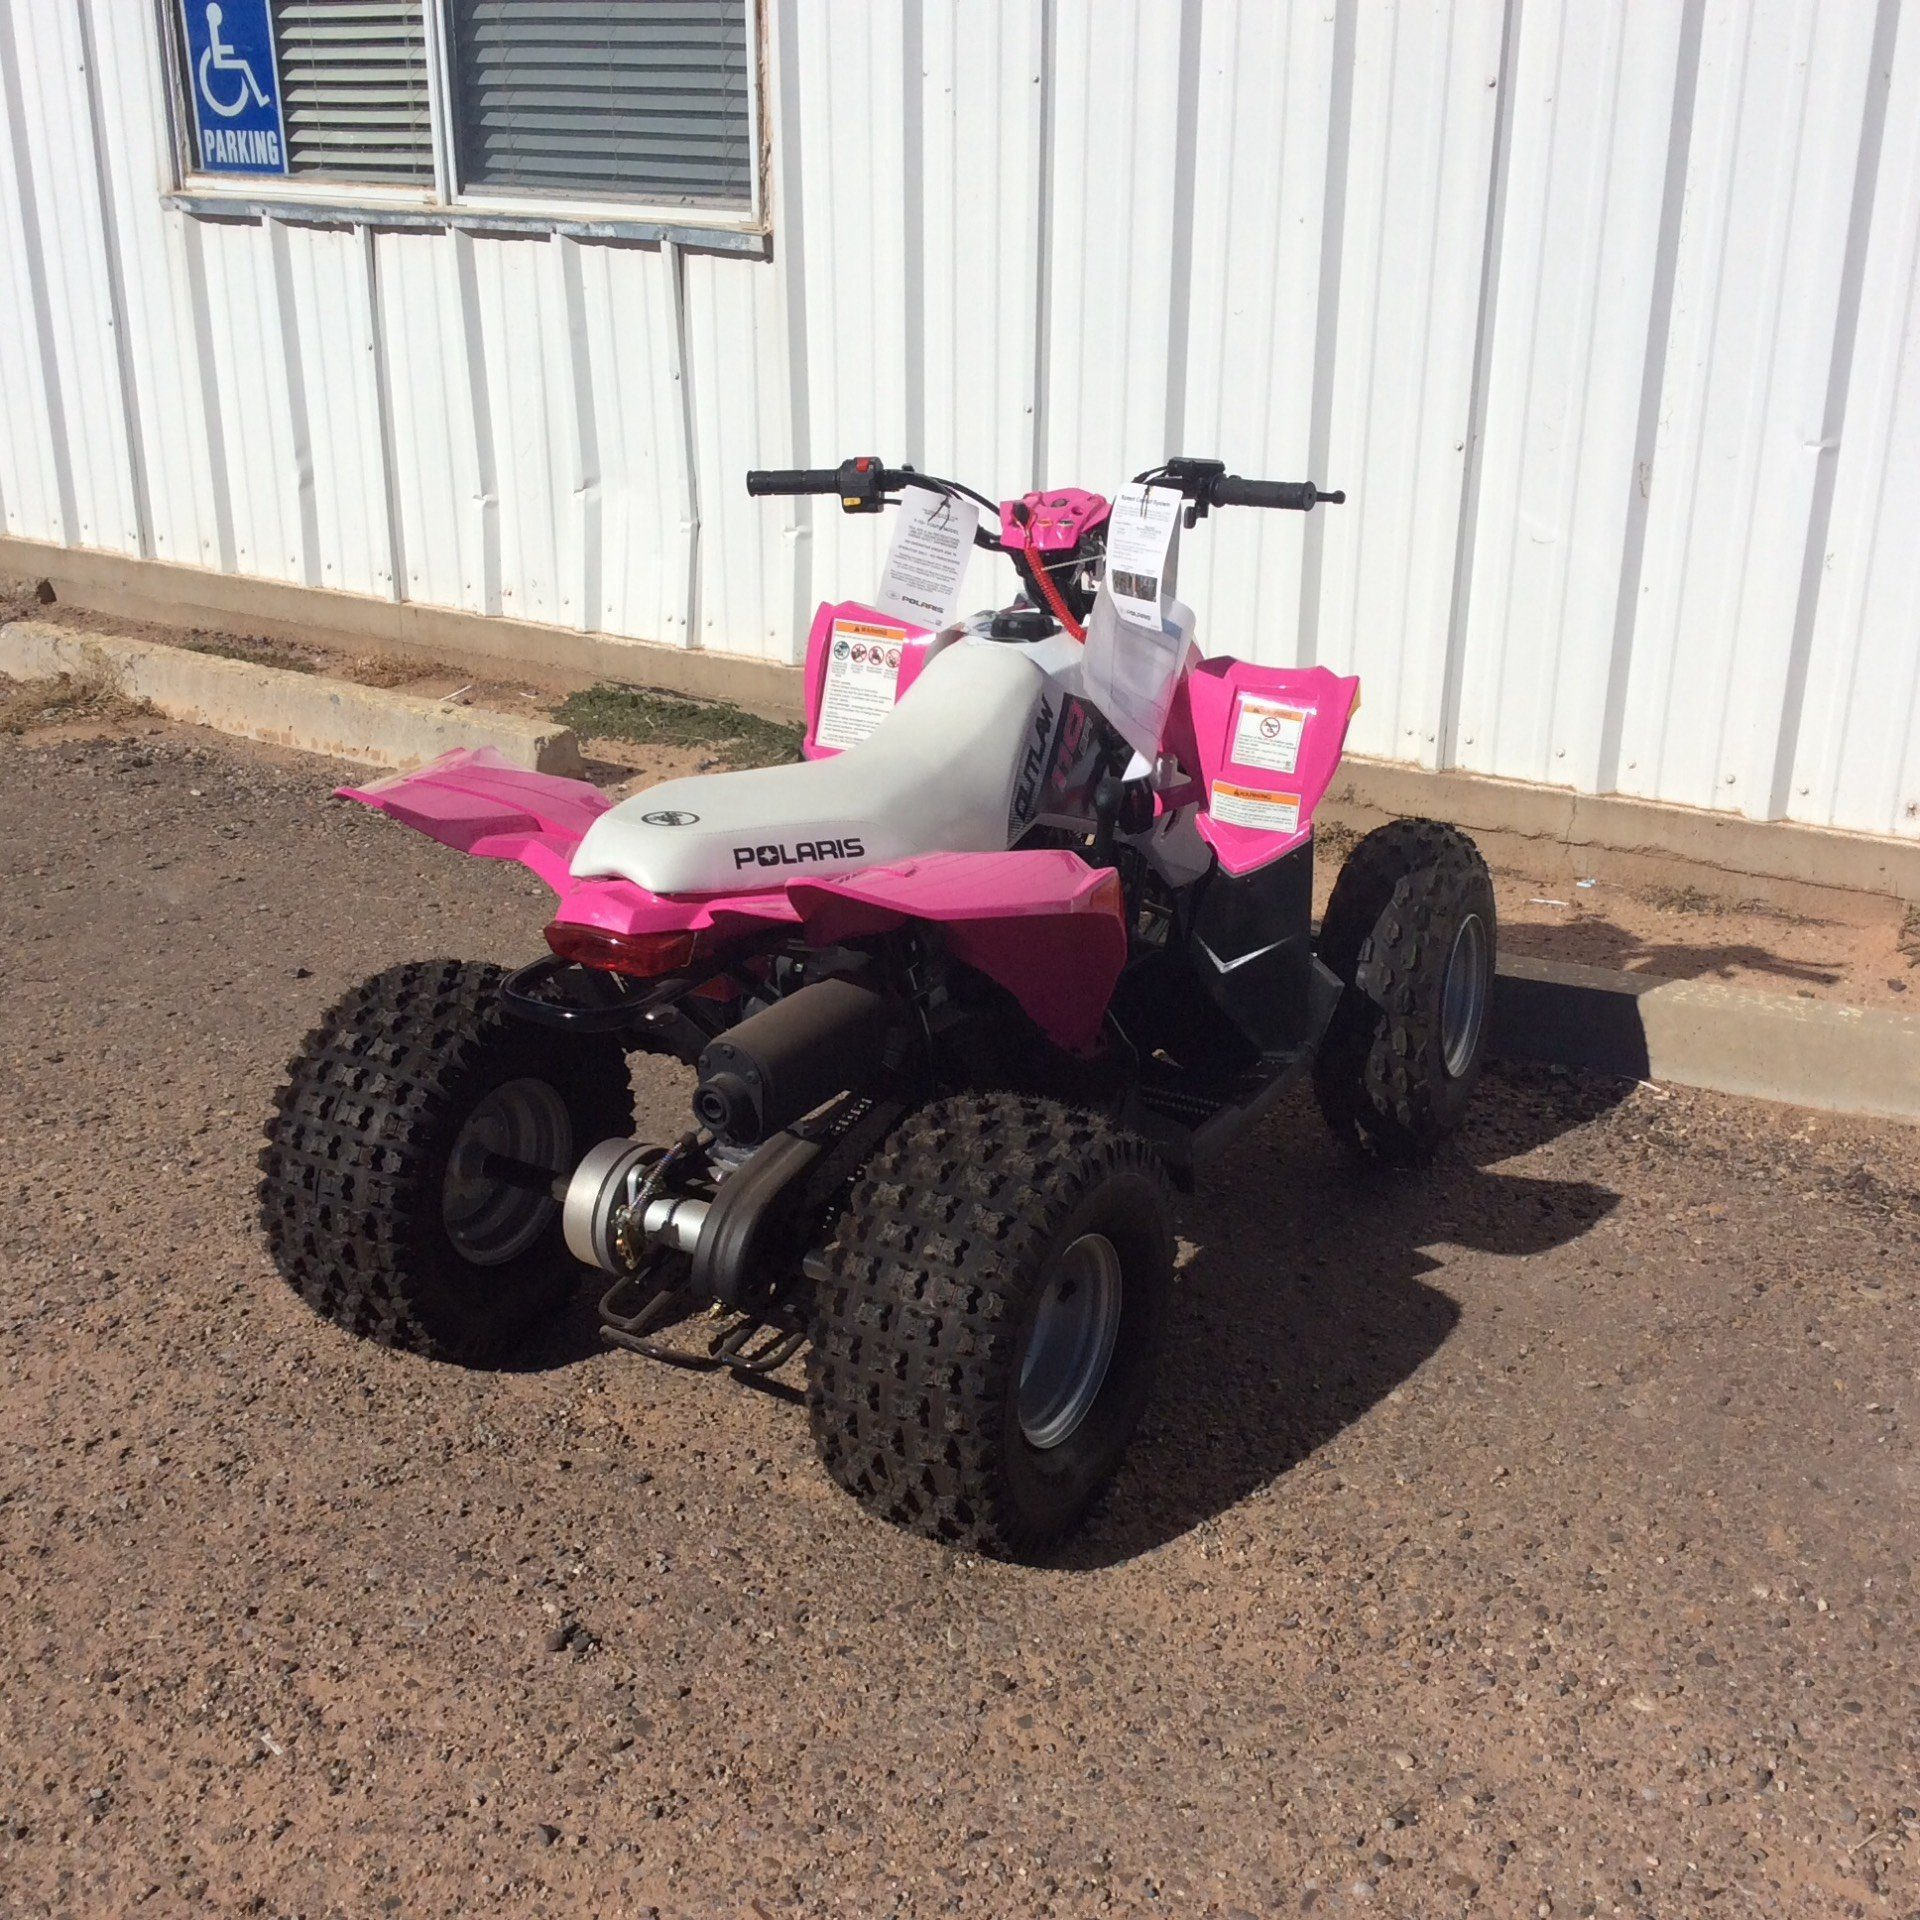 2016 Polaris Outlaw 110 EFI in Clovis, New Mexico